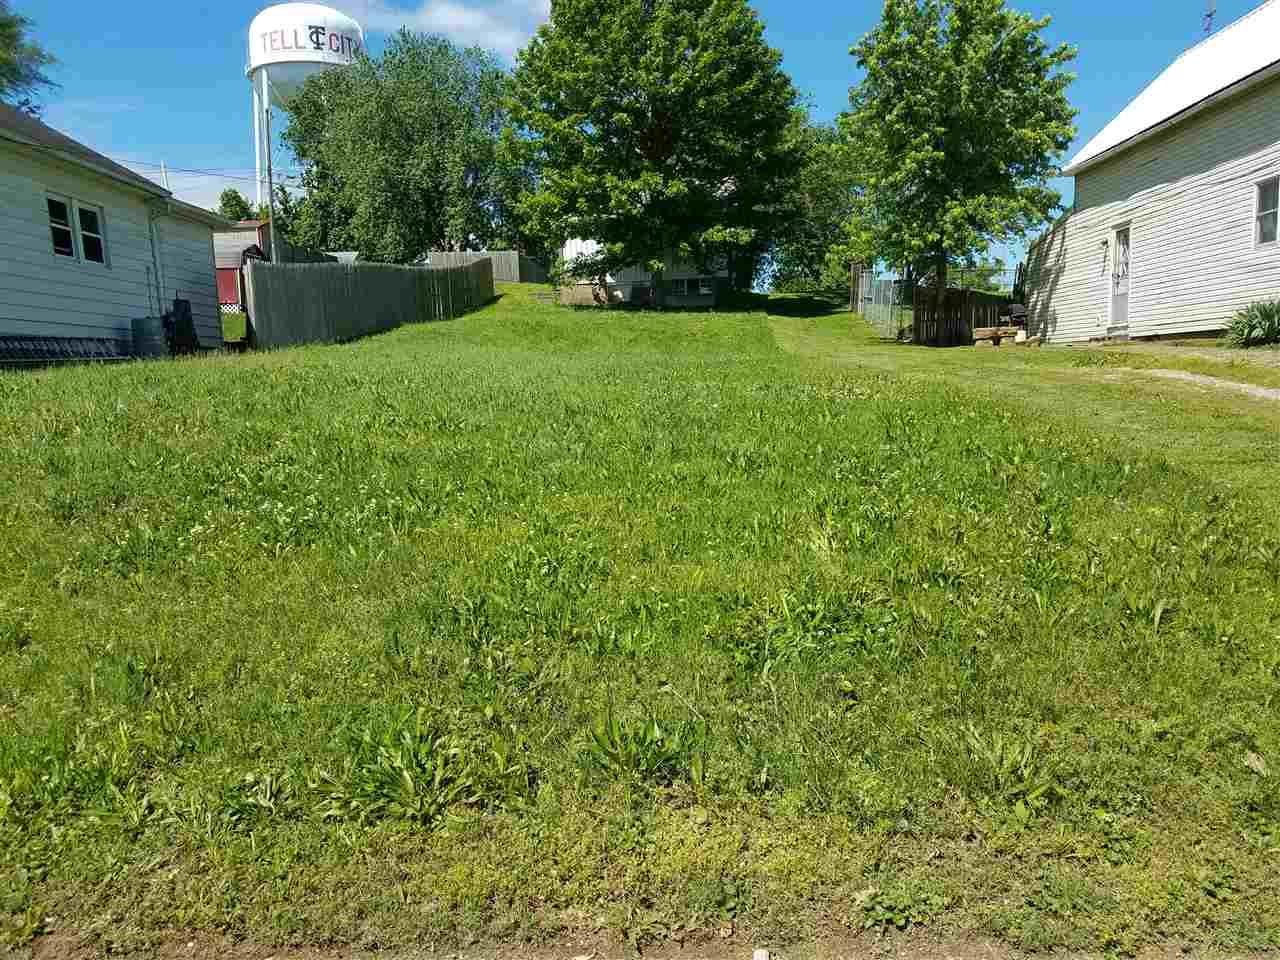 539 11th Street, Tell City, IN 47586